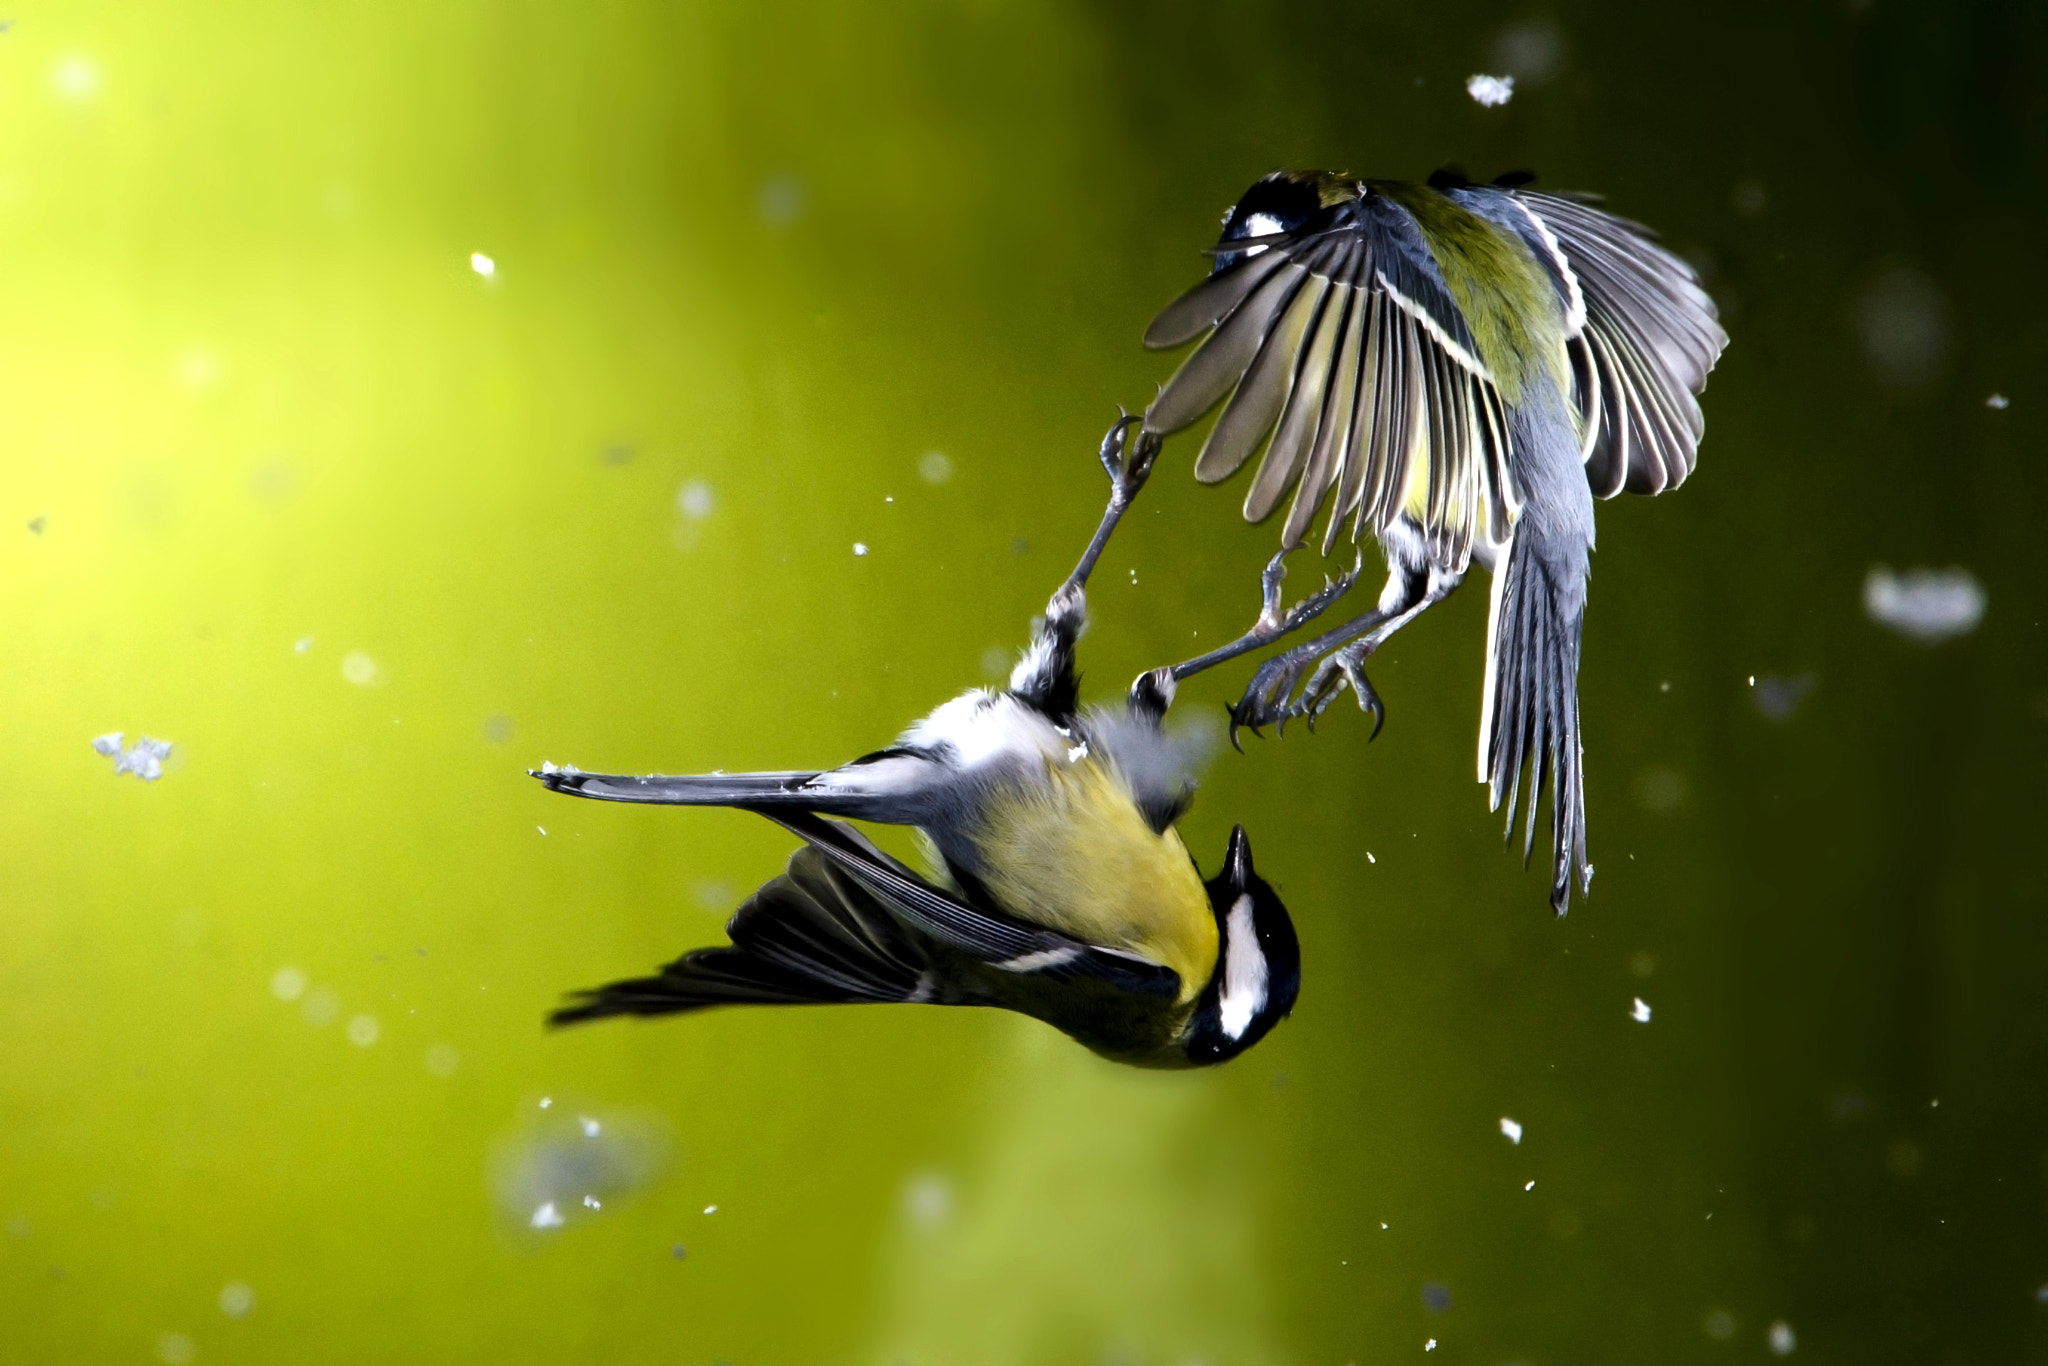 Photograph Fighting for Food by Mike Meysner on 500px